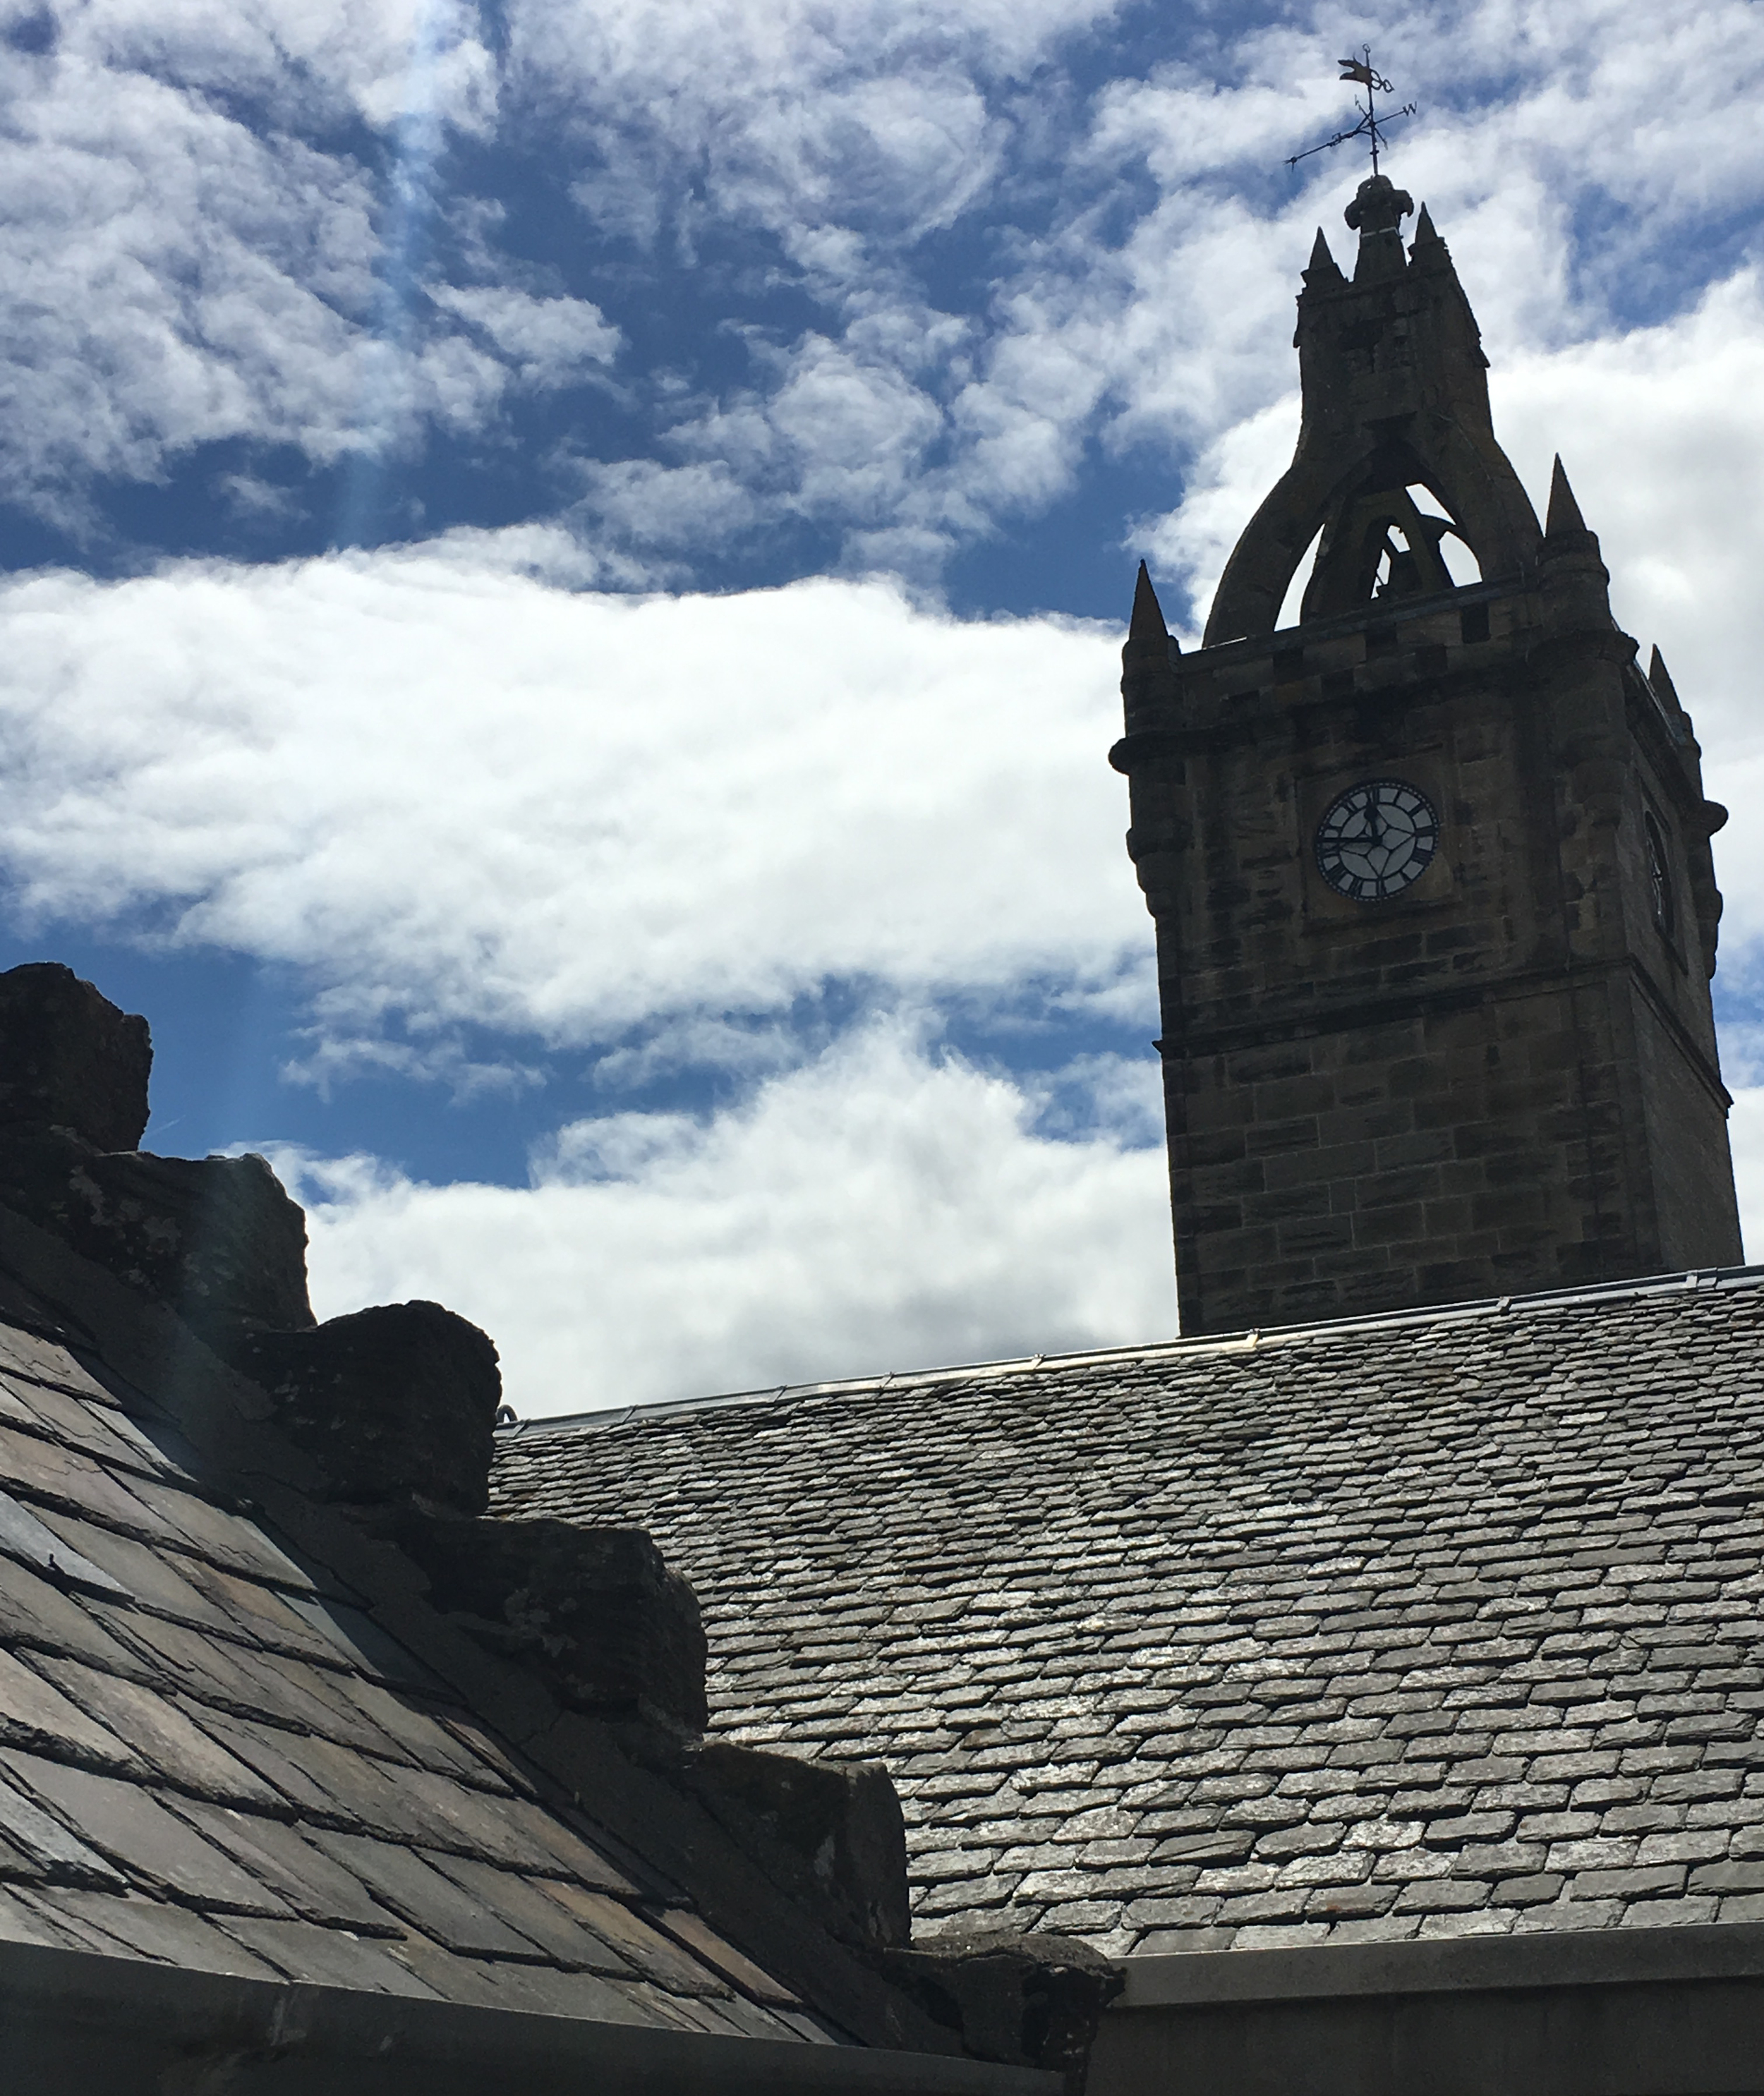 Crow-Stepped Gable, 9 Montgomery Street &  East Kilbride Old Parish Church